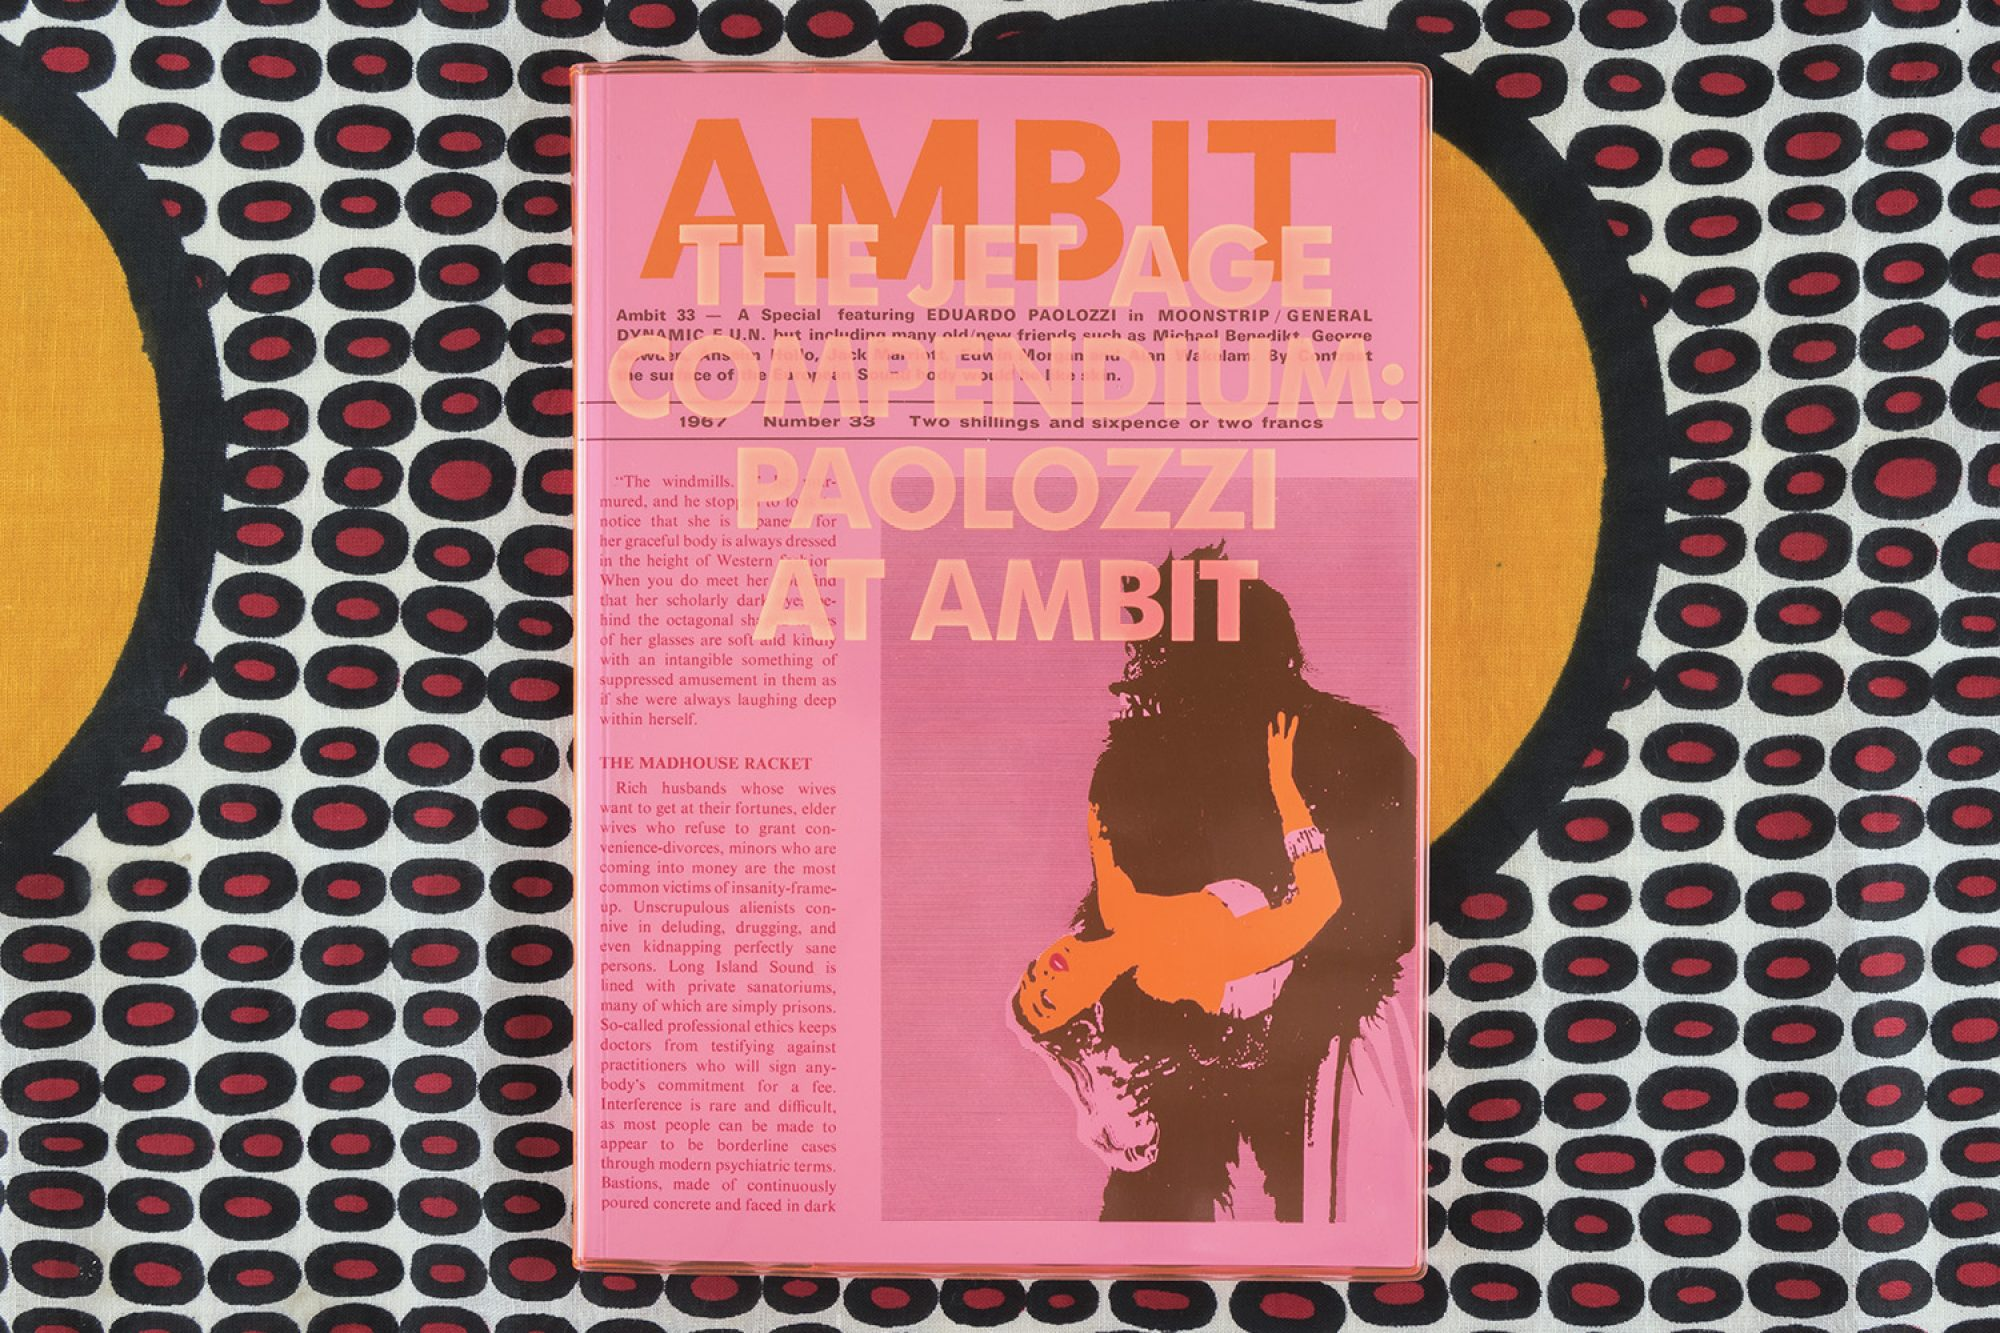 Paolozzi At Ambit Front Cover